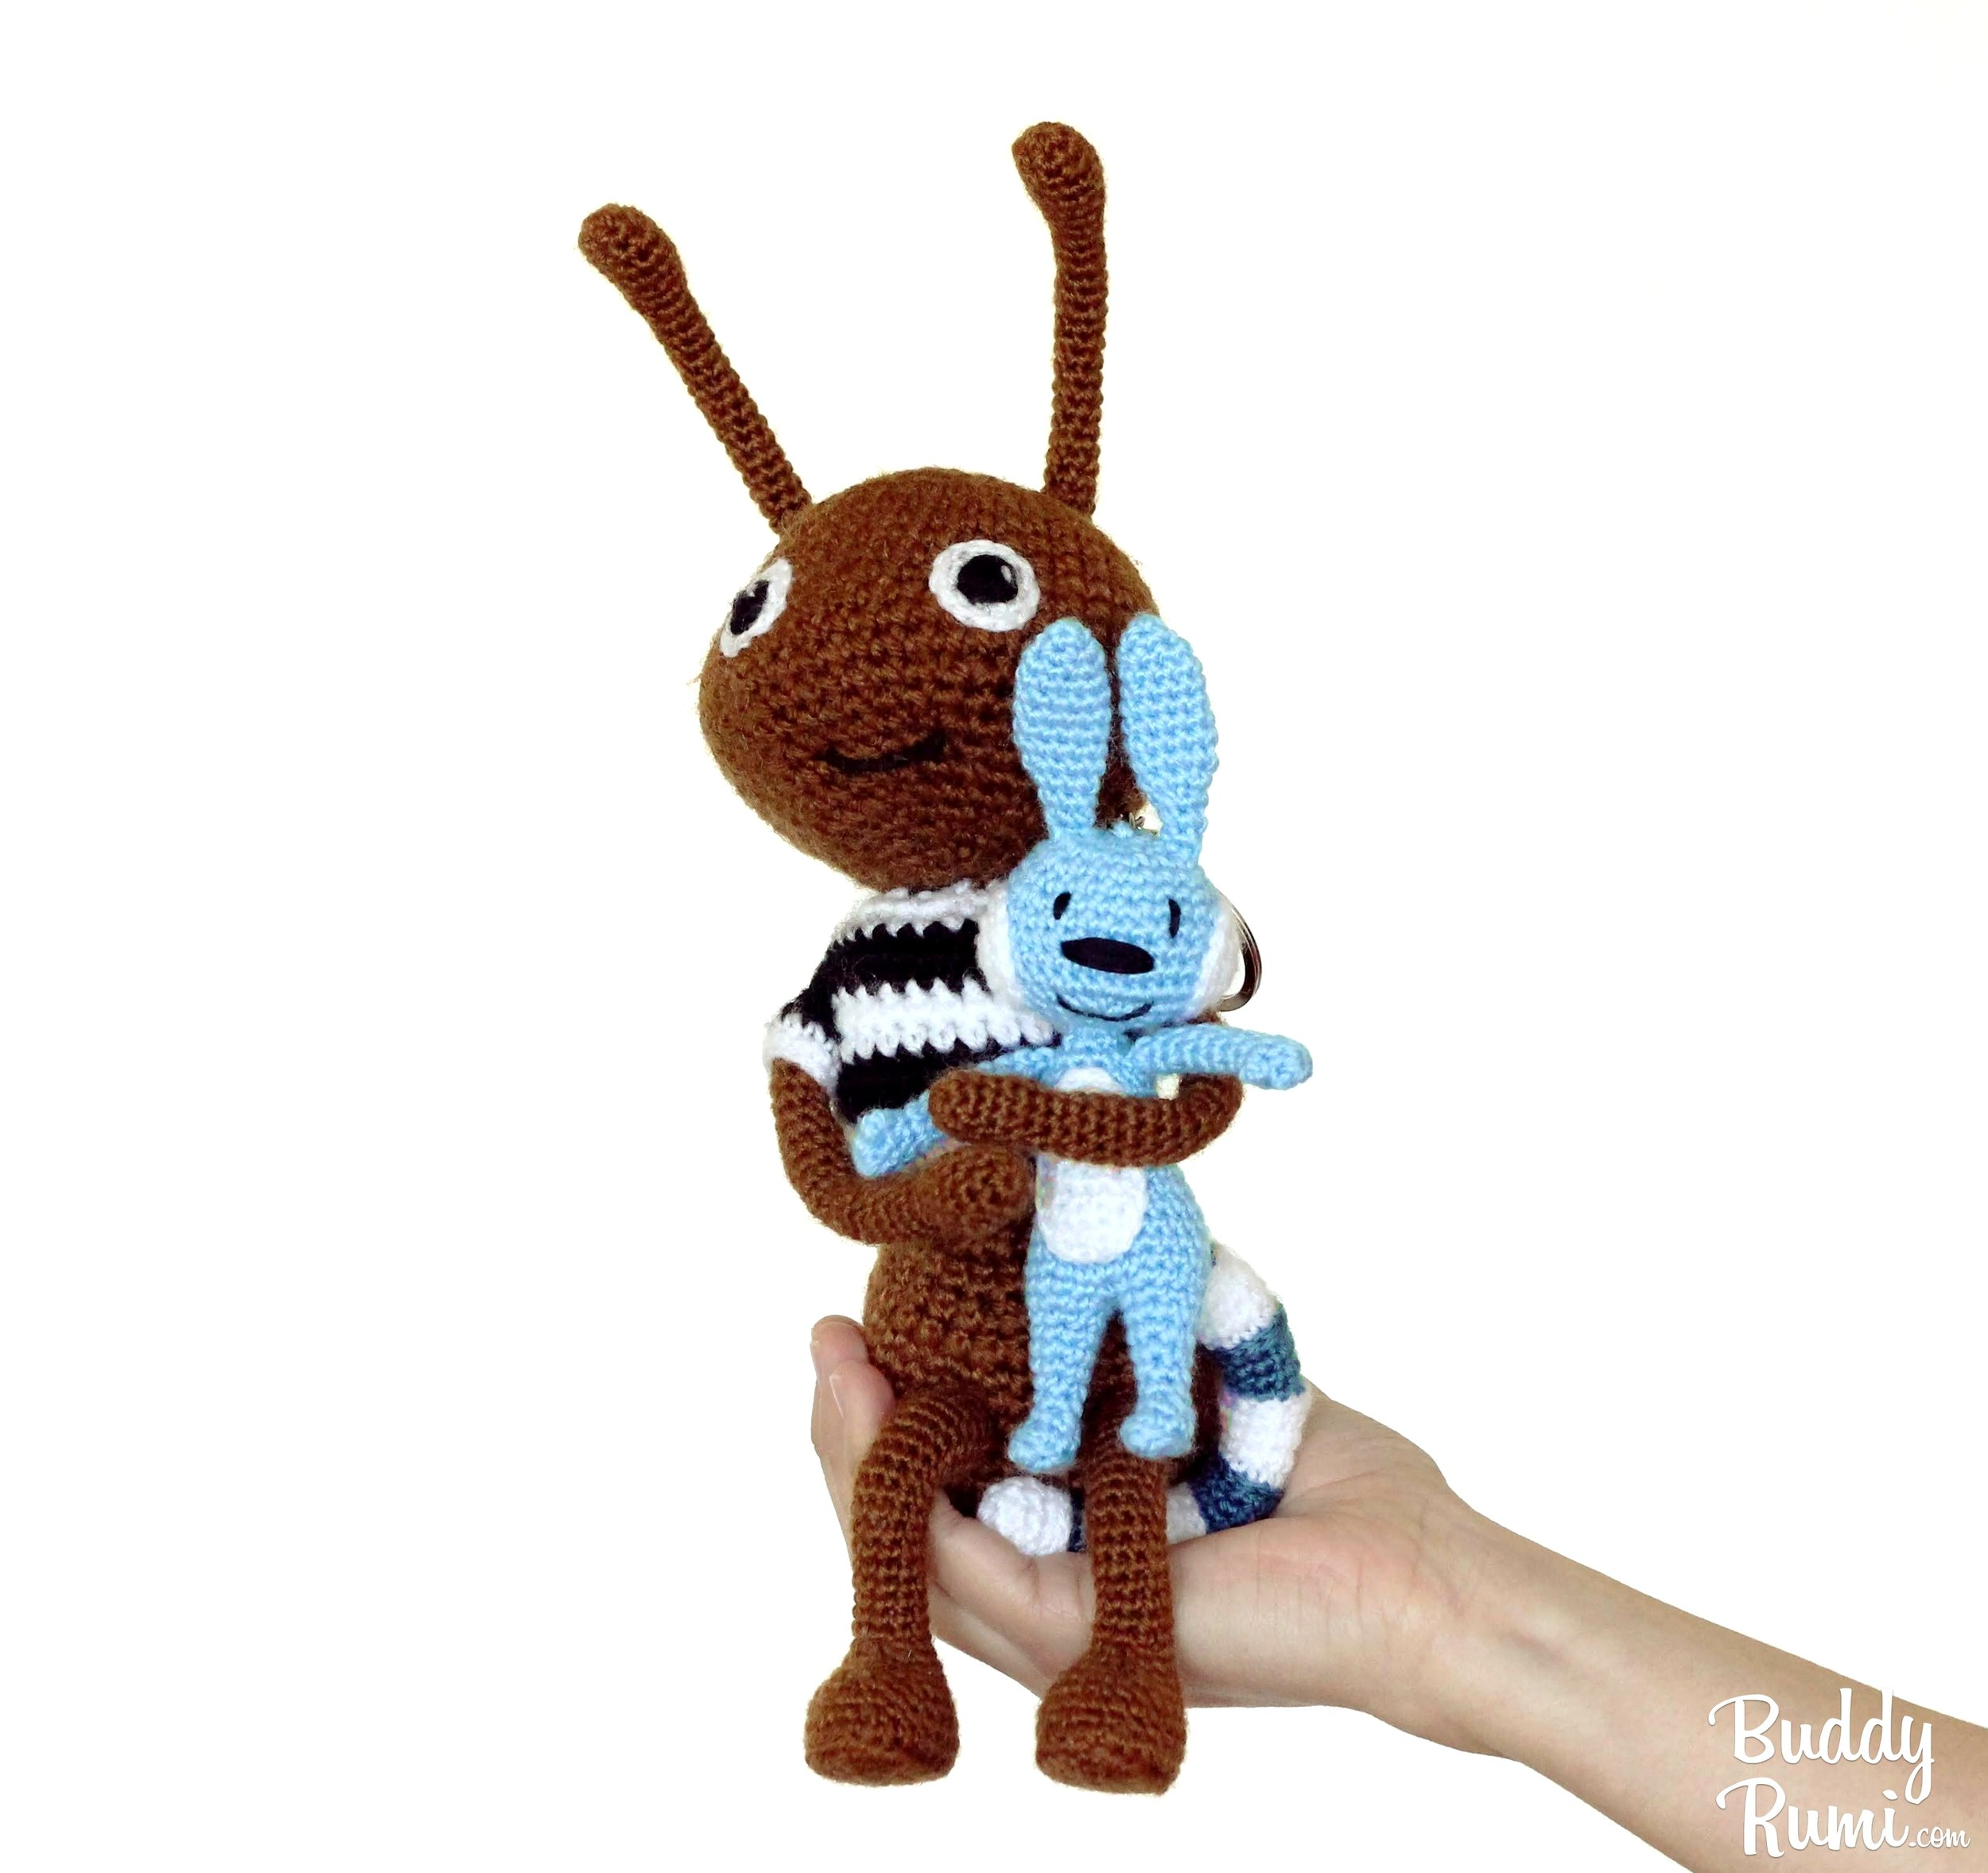 Robber ant and Hatch amigurumi pattern